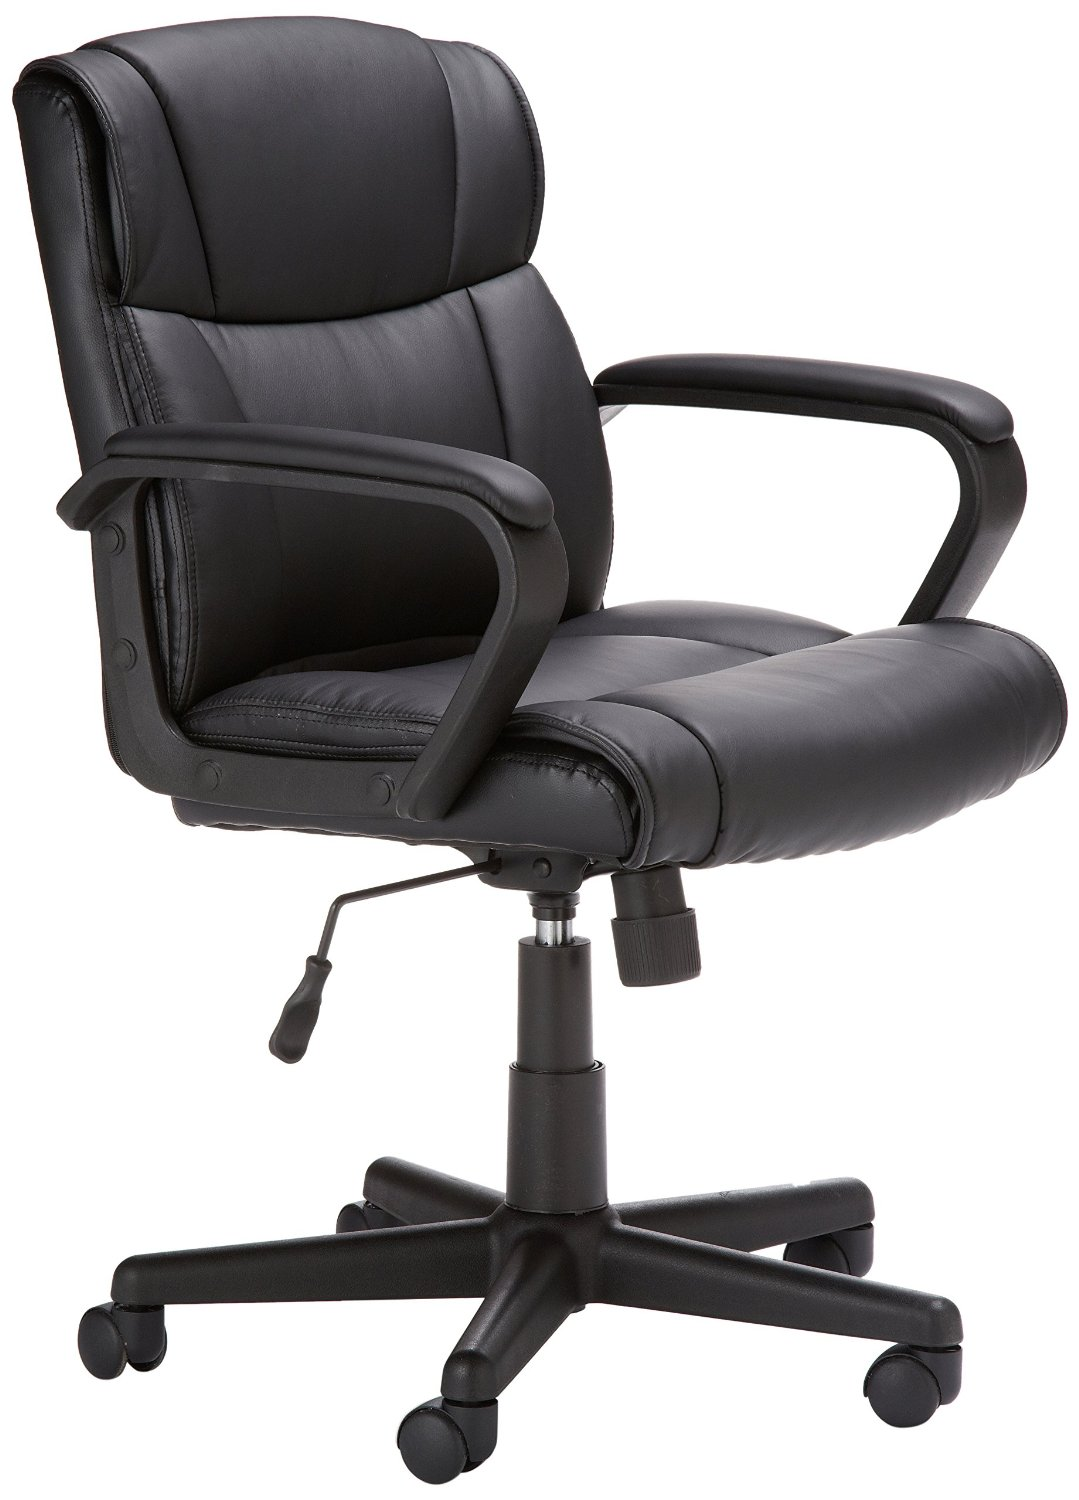 amazonbasics mid back office chair b nqvl sl